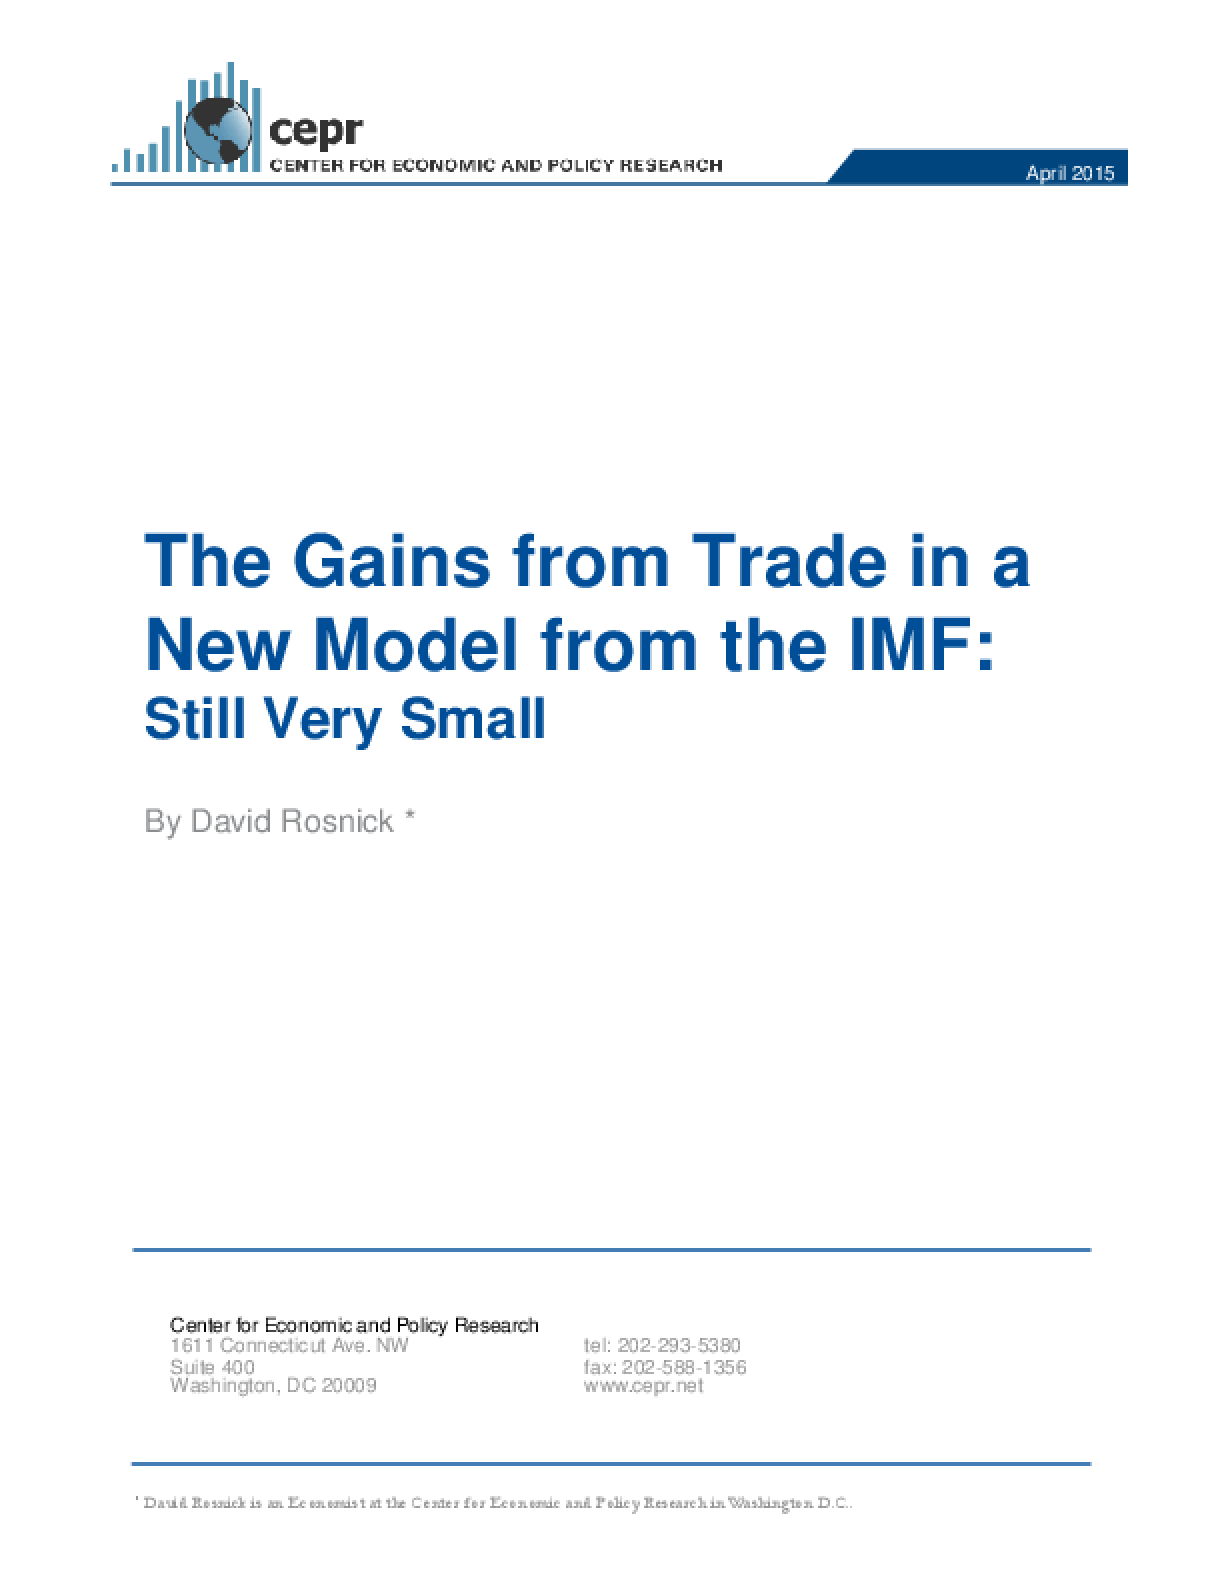 The Gains from Trade in a New Model from the IMF: Still Very Small